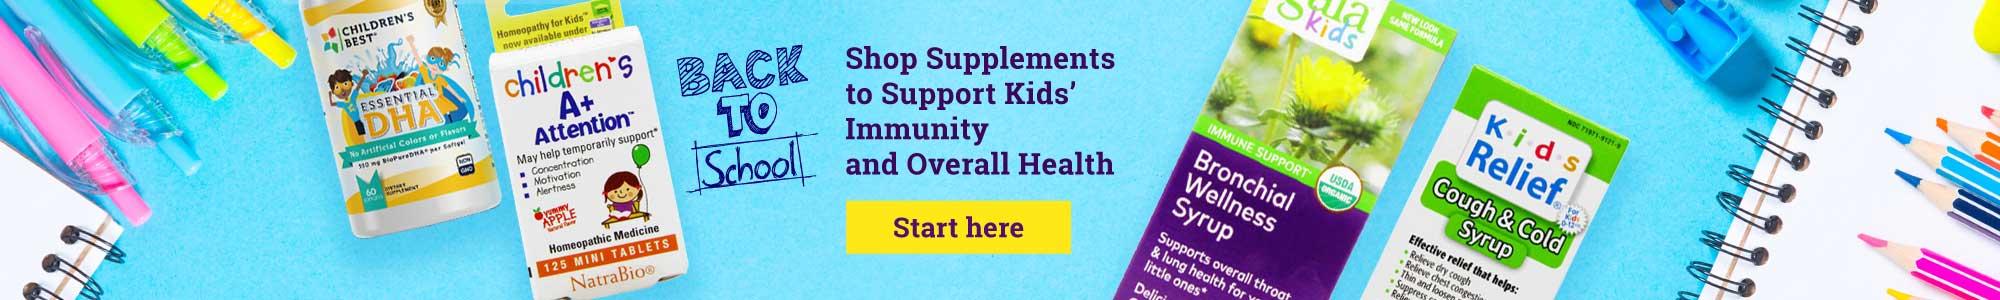 Back to School - SShop Supplements to Support Kids' Immunity and Overall Health - Start here